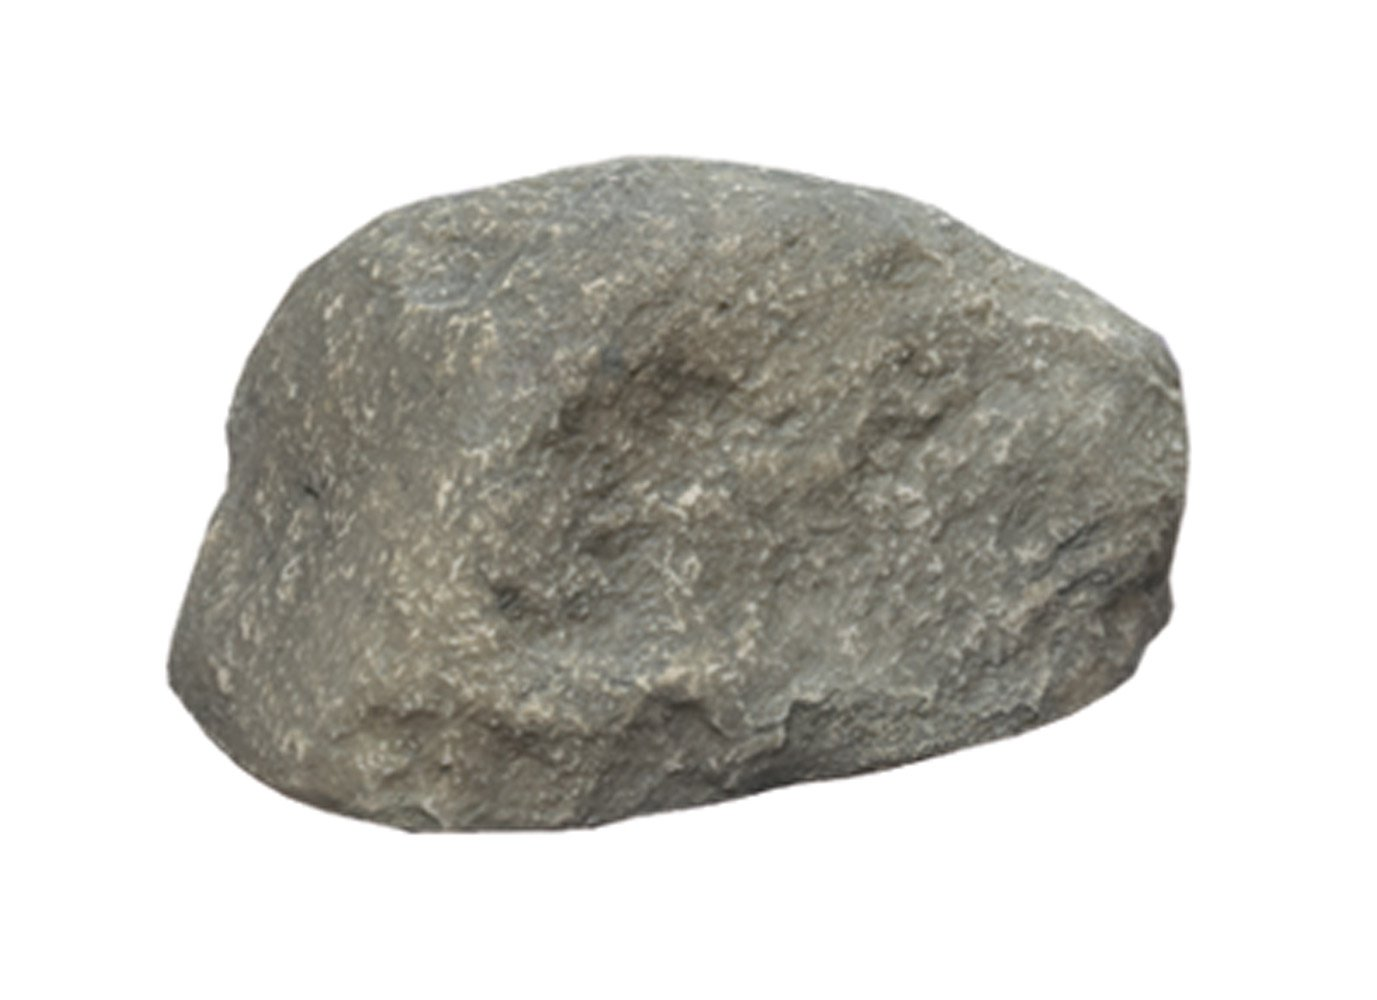 Outdoor Essentials Faux Rock, Grey, Key